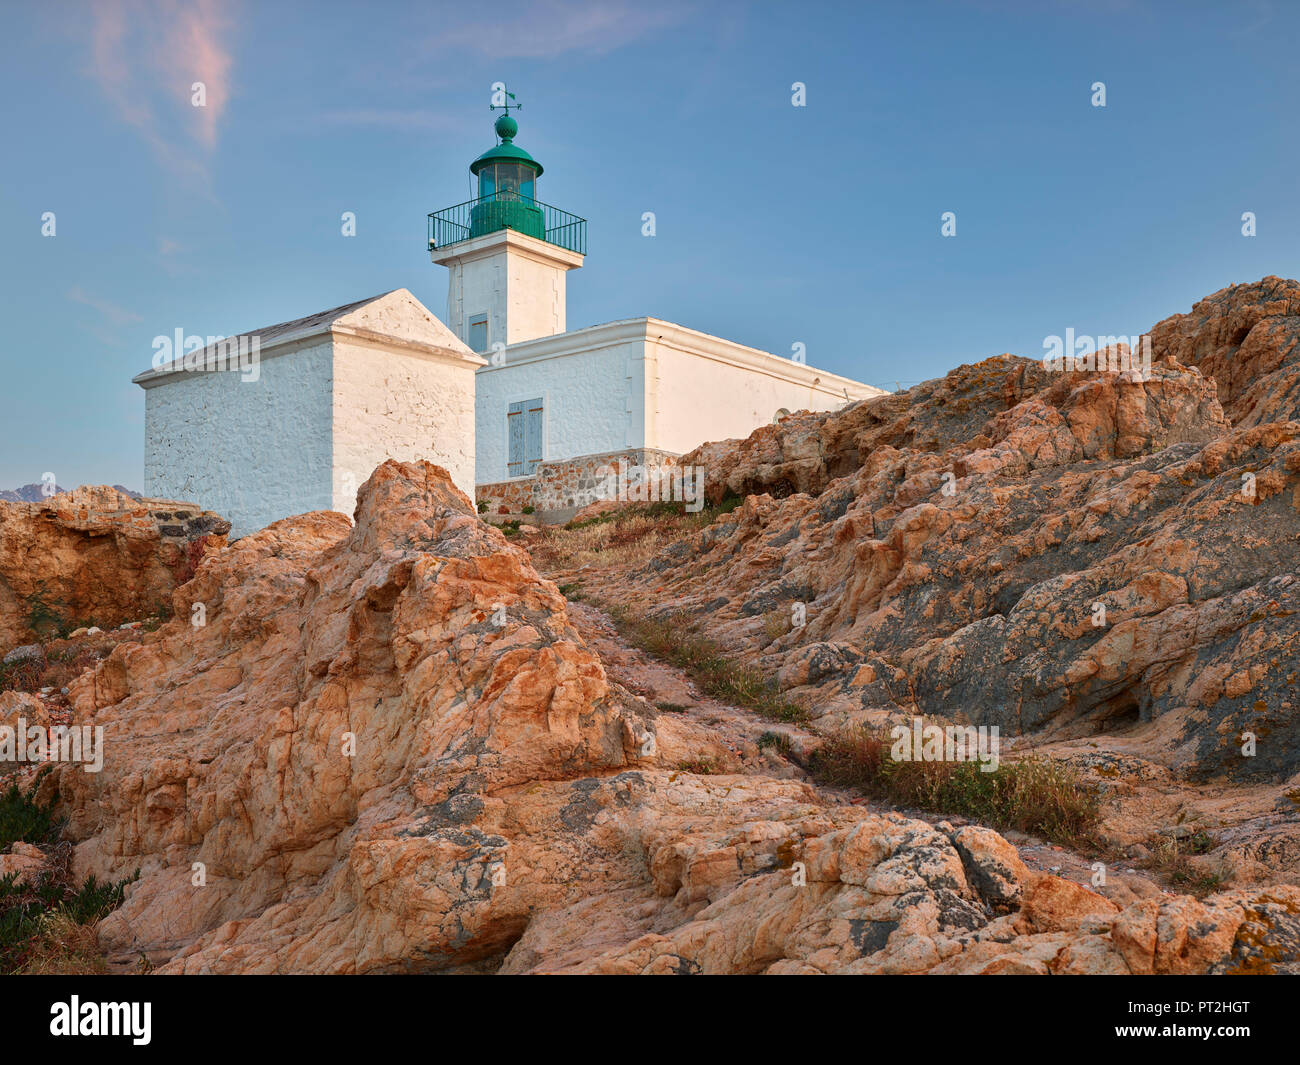 Lighthouse at L'Ile Rousse, Corsica, France - Stock Image